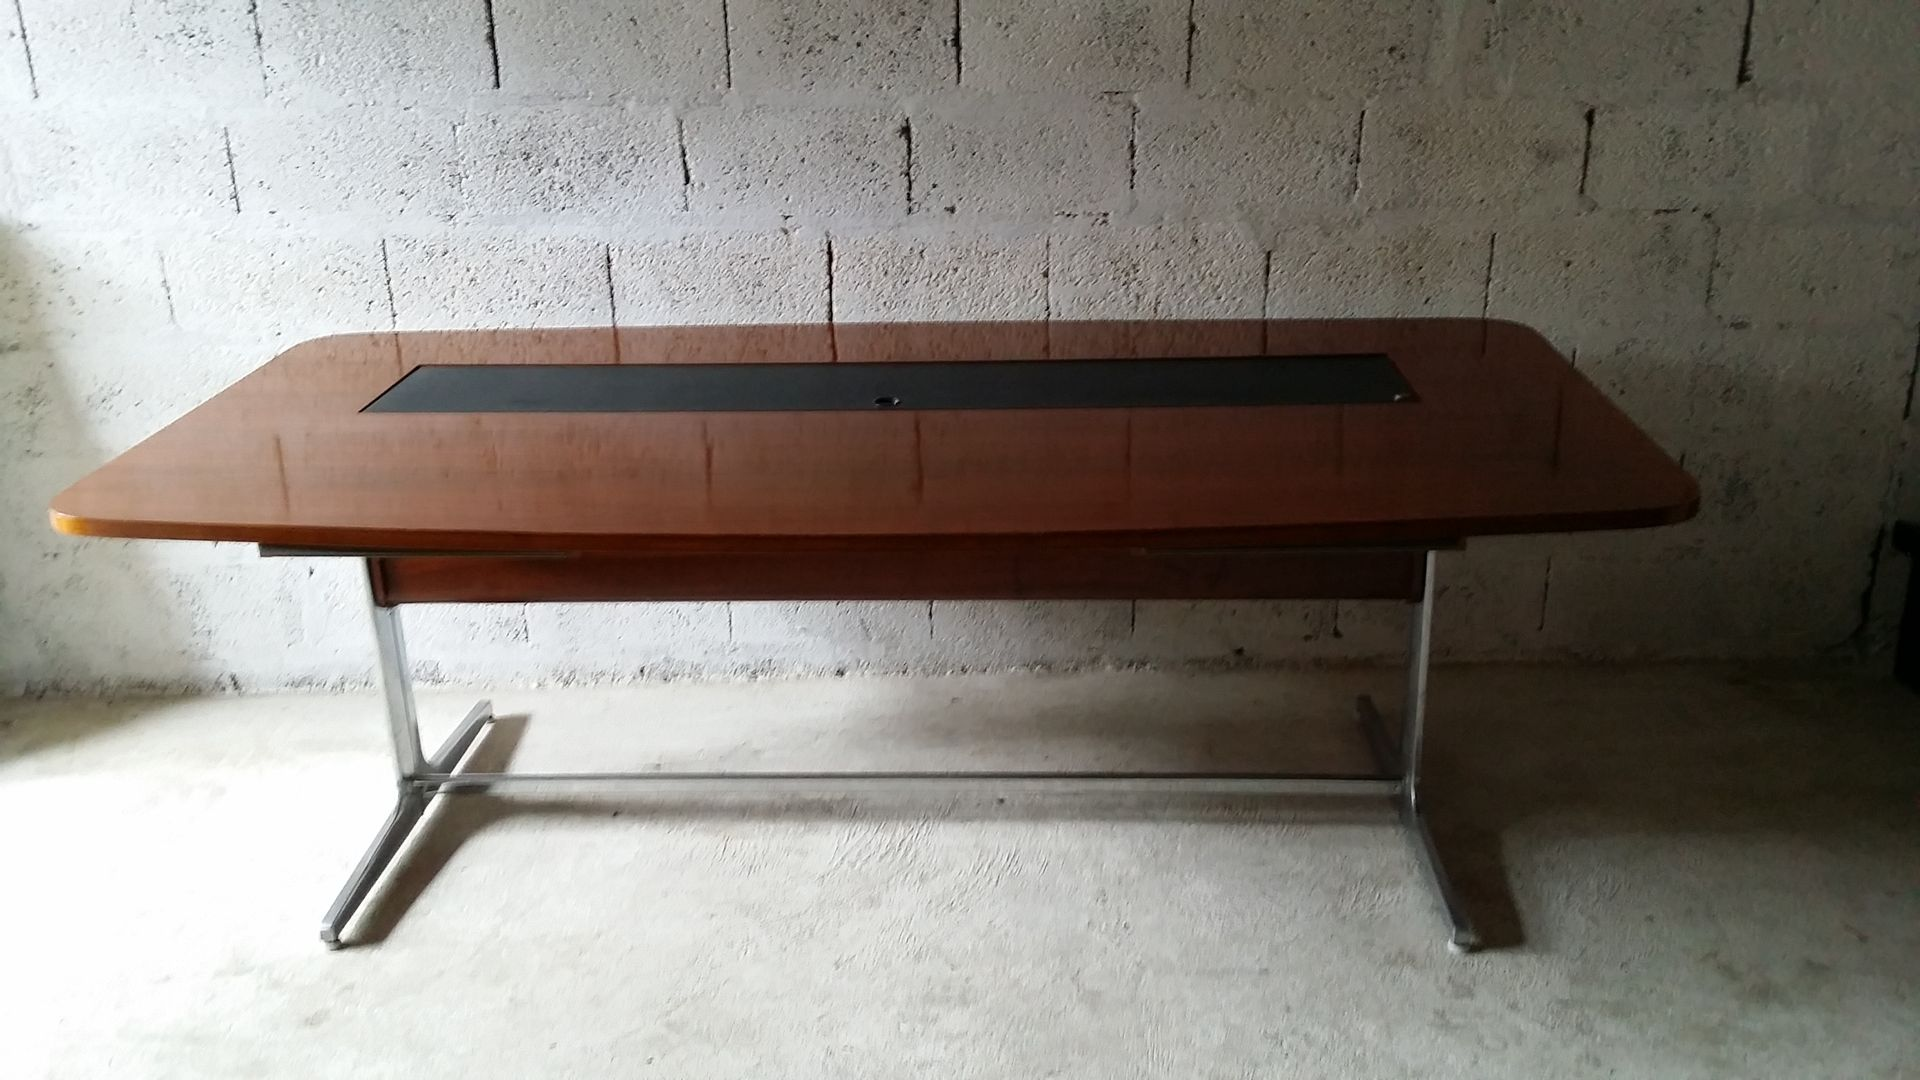 Vintage desk by george nelson for herman miller for sale at pamono - Herman miller vintage ...